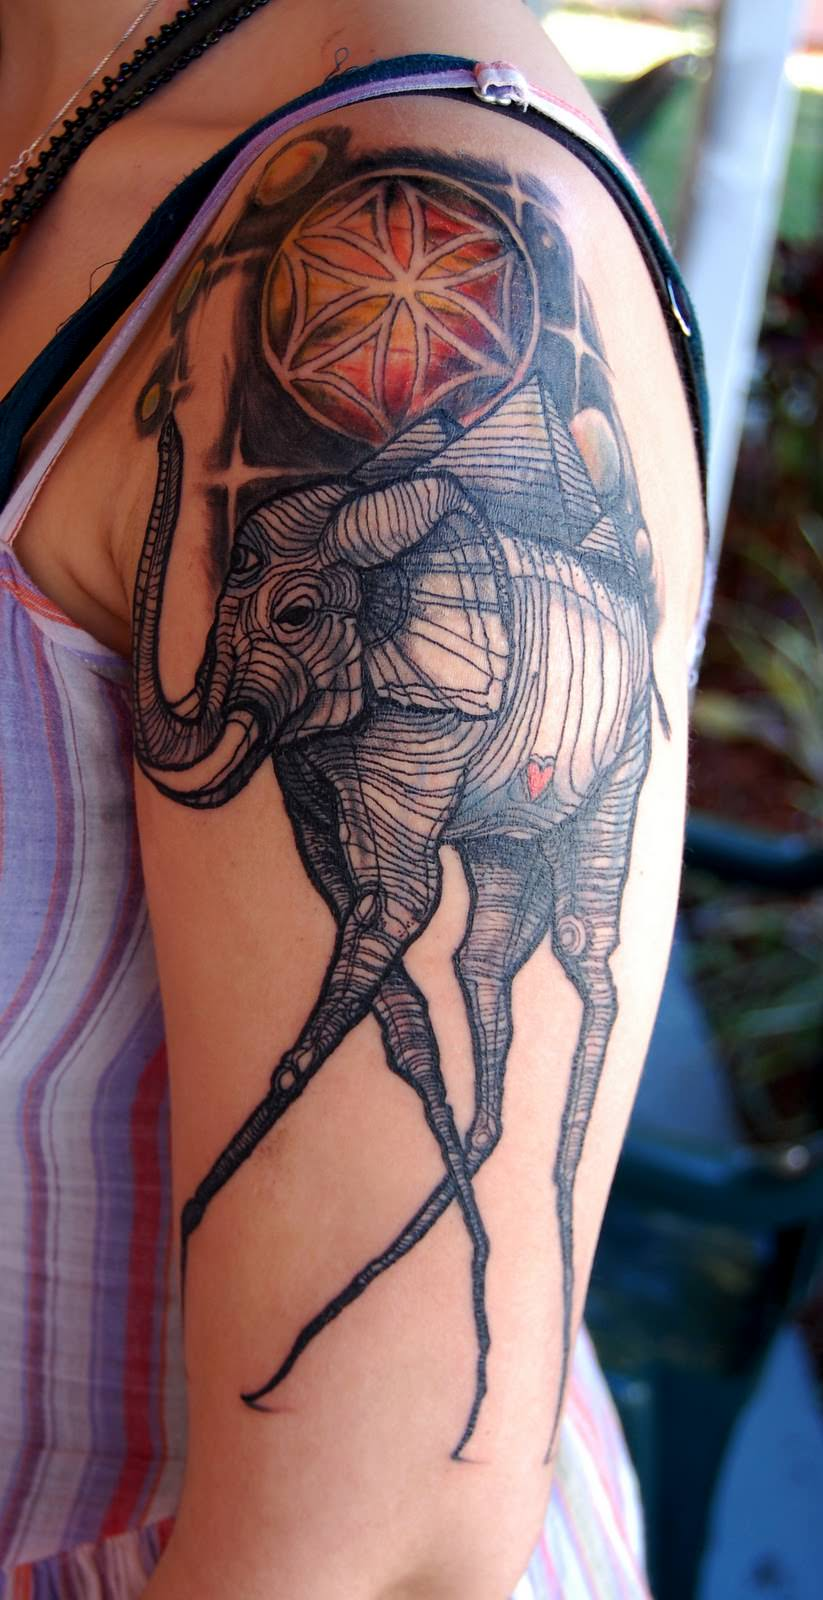 This David Hale tattoo is based on the long legged elephants painted by Salvador Dali